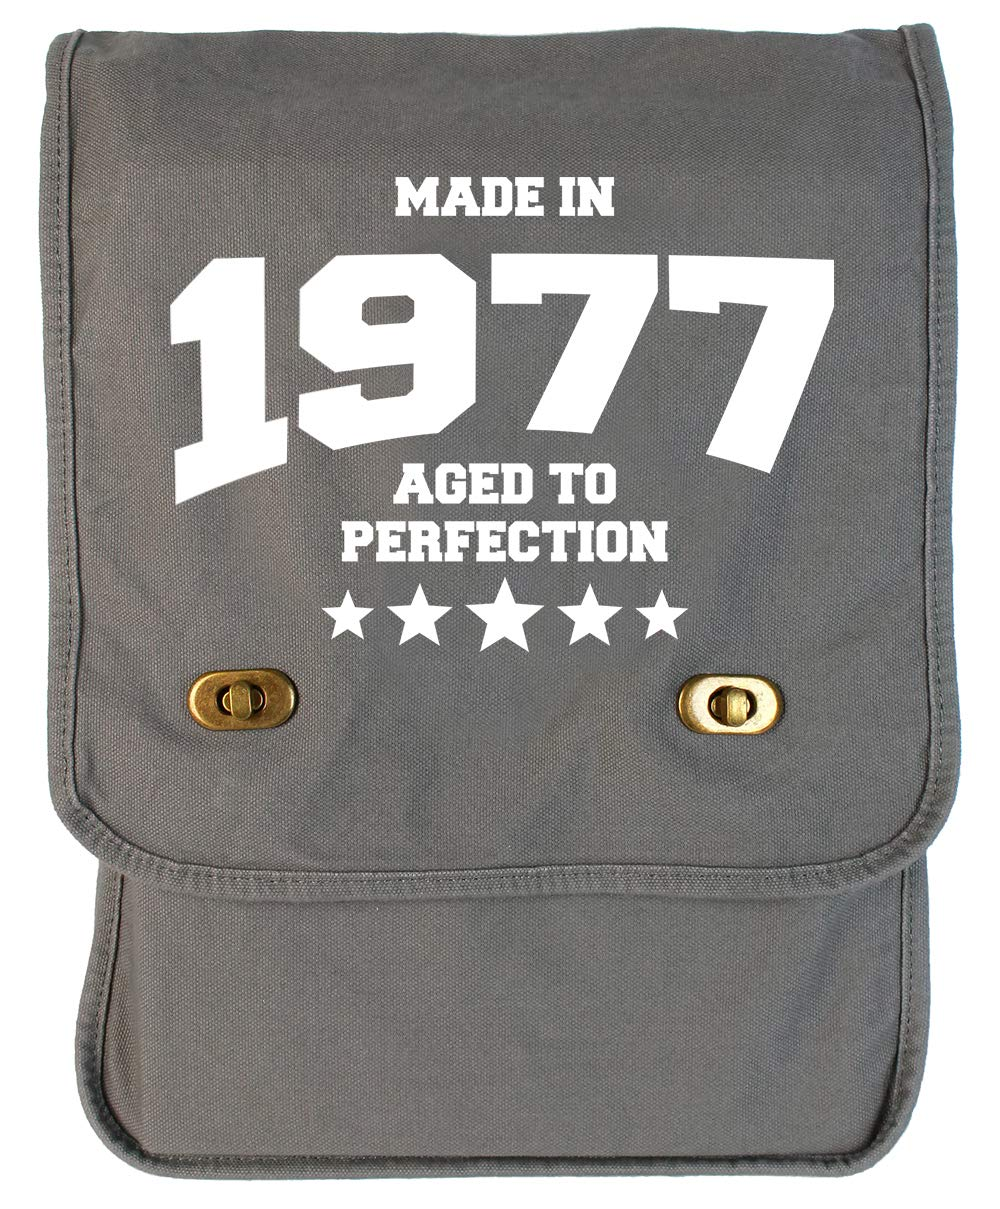 Tenacitee Athletic Aged to Perfection 1977 Grey Brushed Canvas Messenger Bag